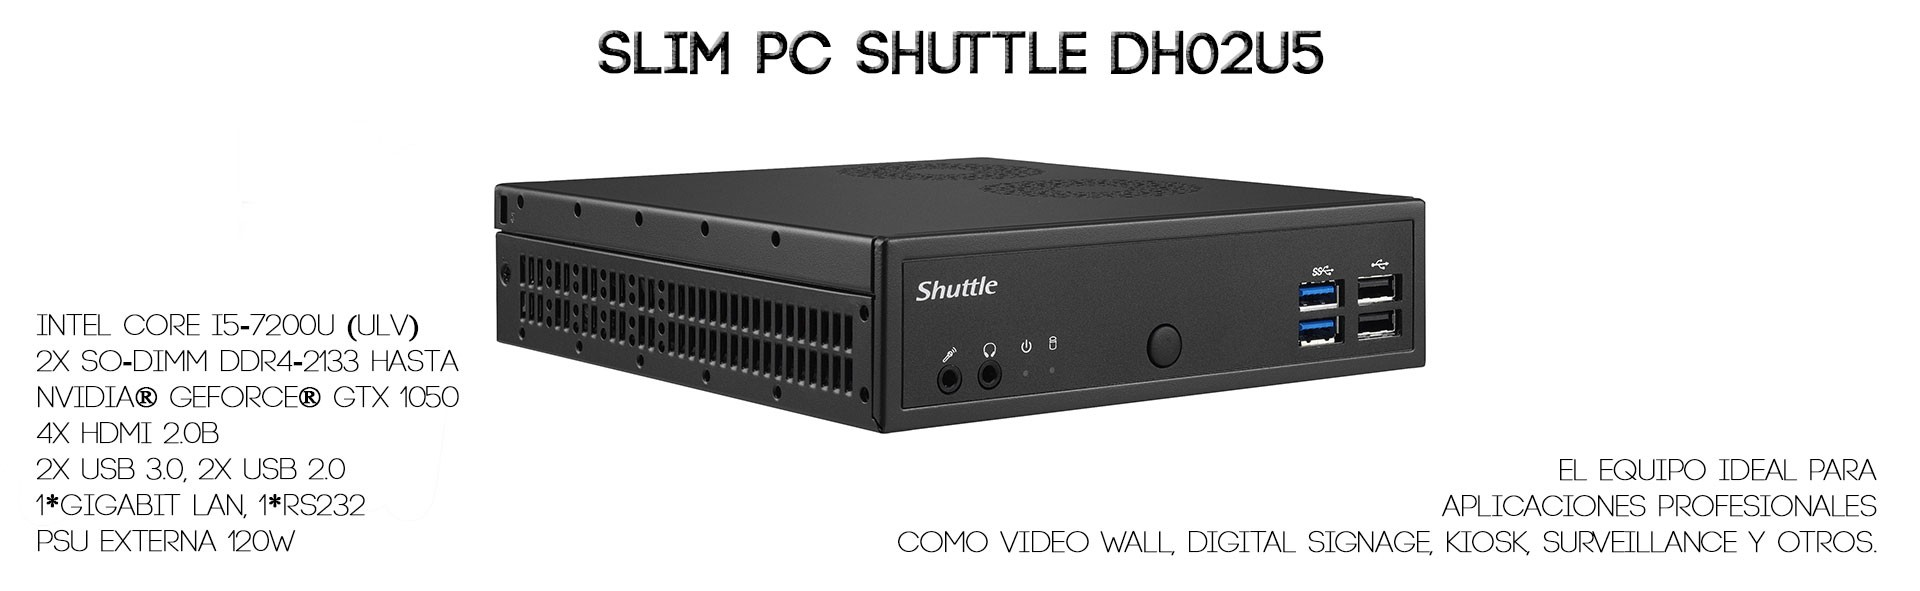 Slim PC Shuttle DH02U5